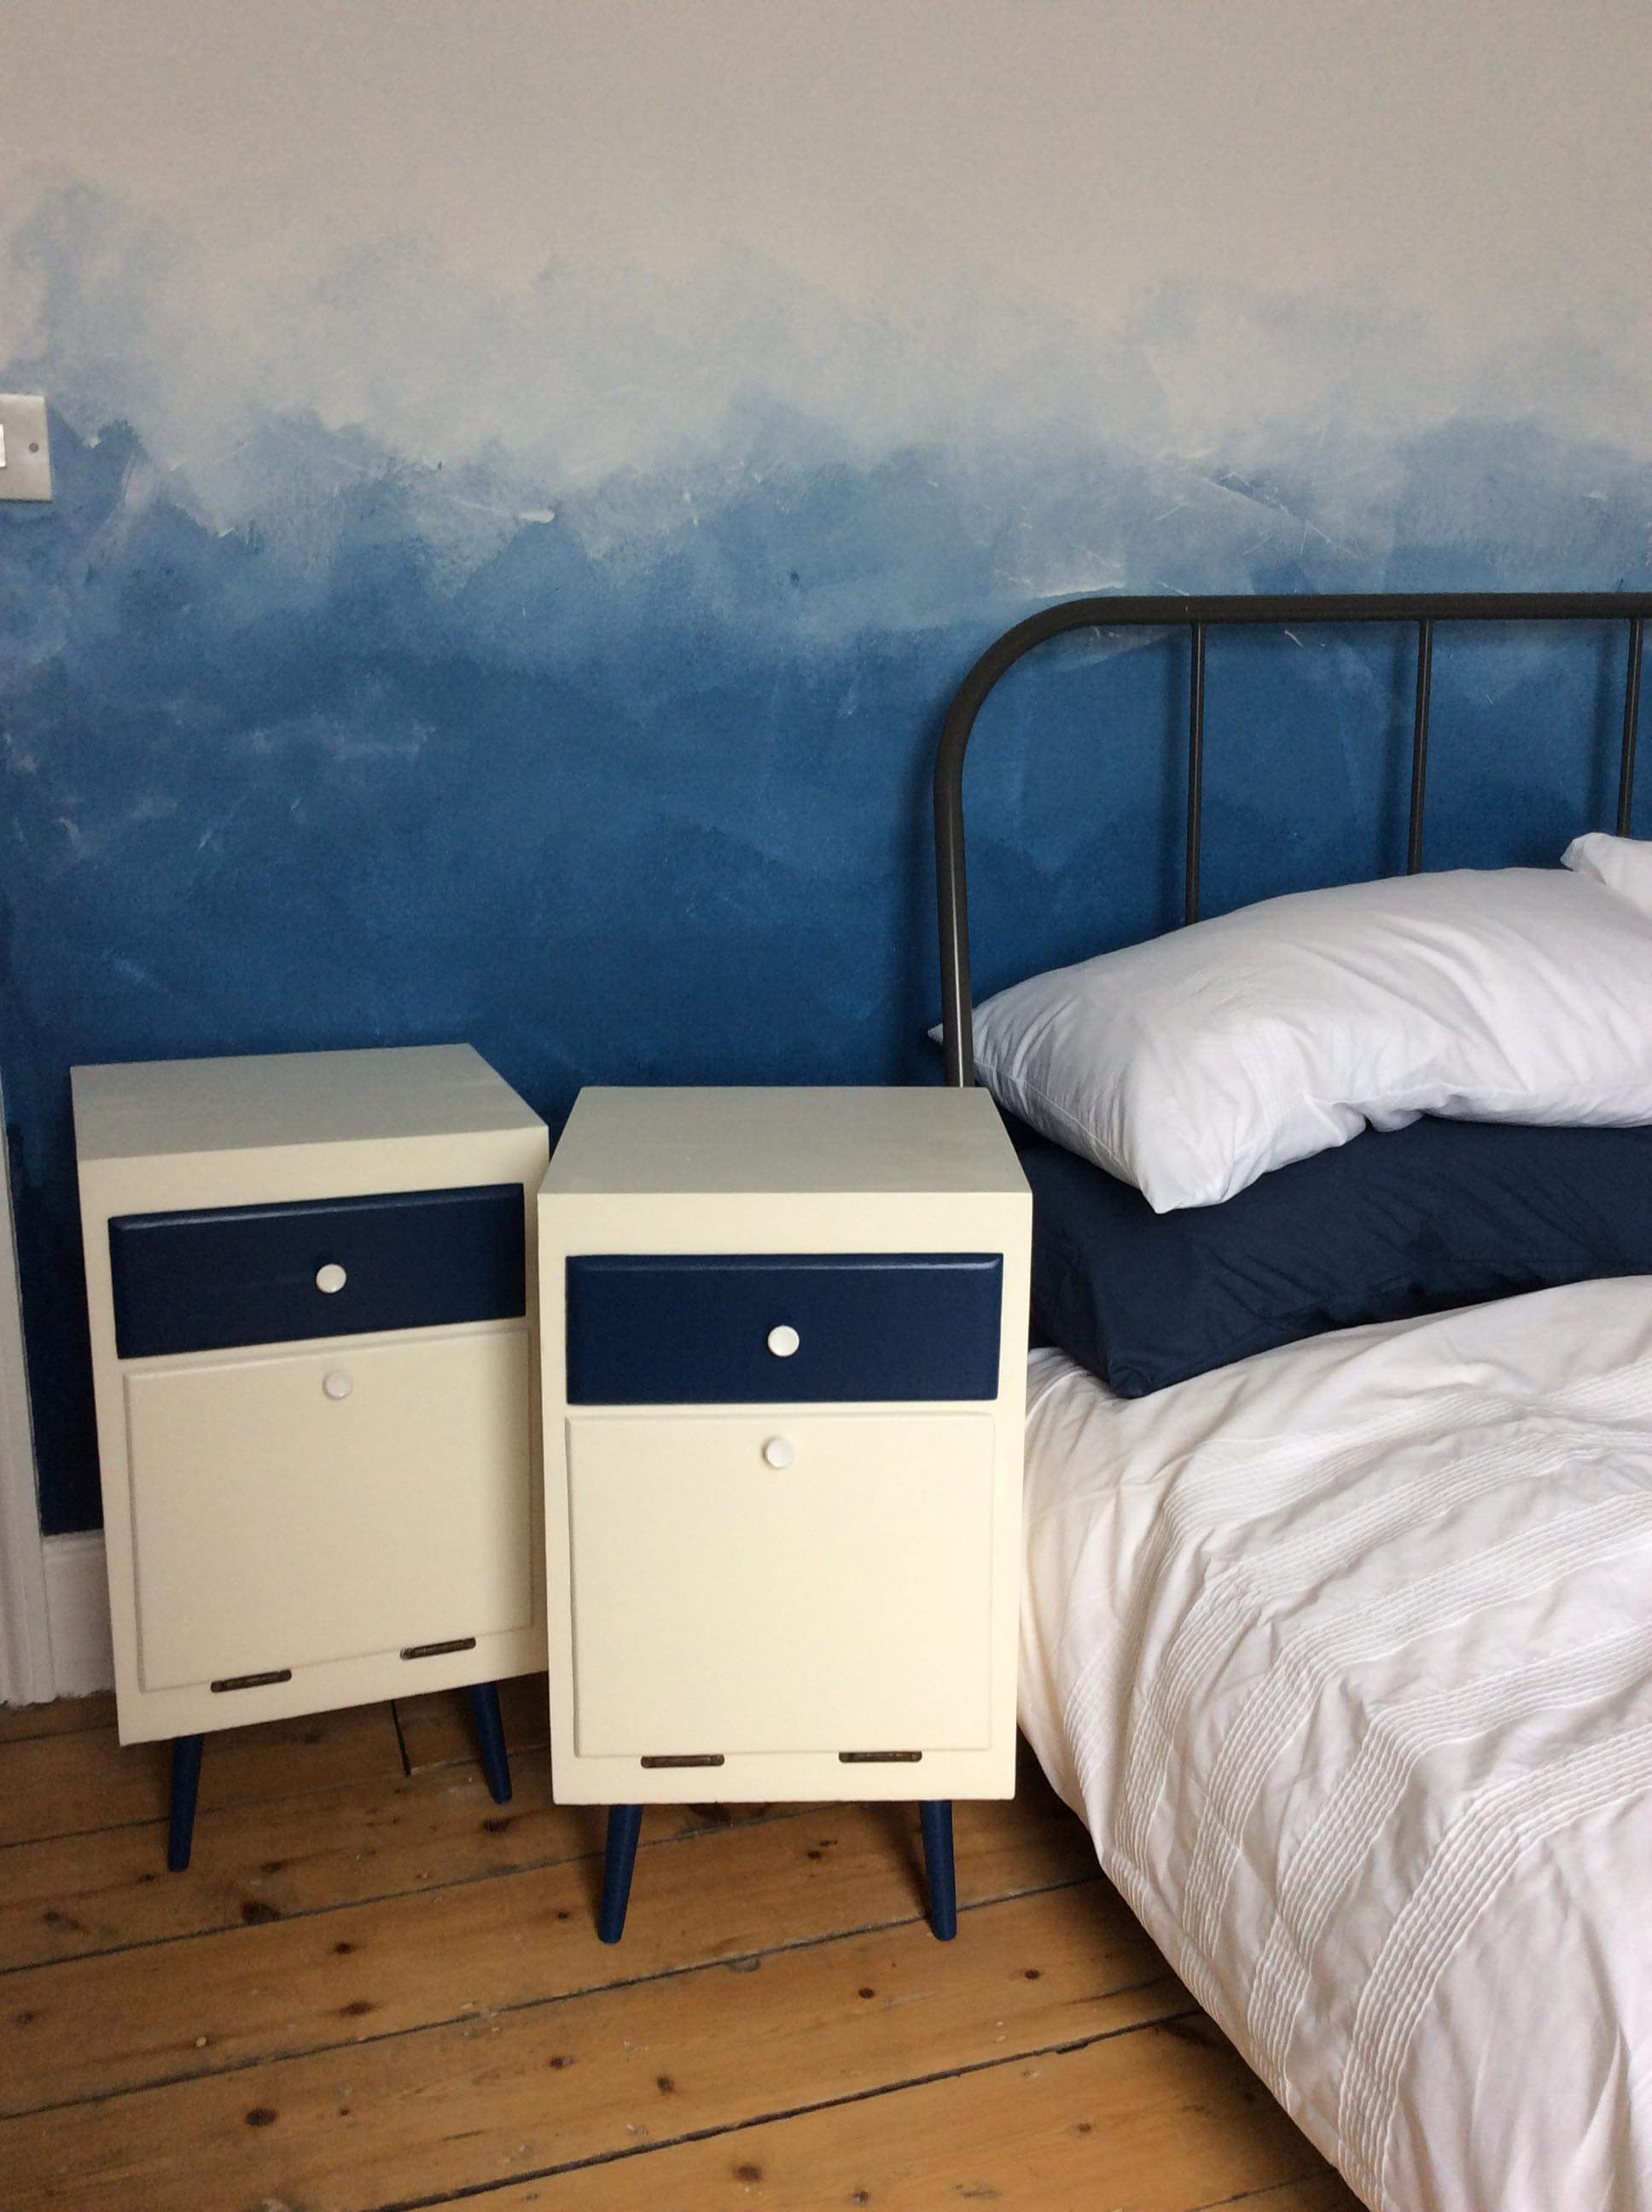 Upcycling project - Upcycled chest of drawers using recycled paint from Community RePaint Bristol City. The chest of drawers have been painted with cream paint and navy blue paint.